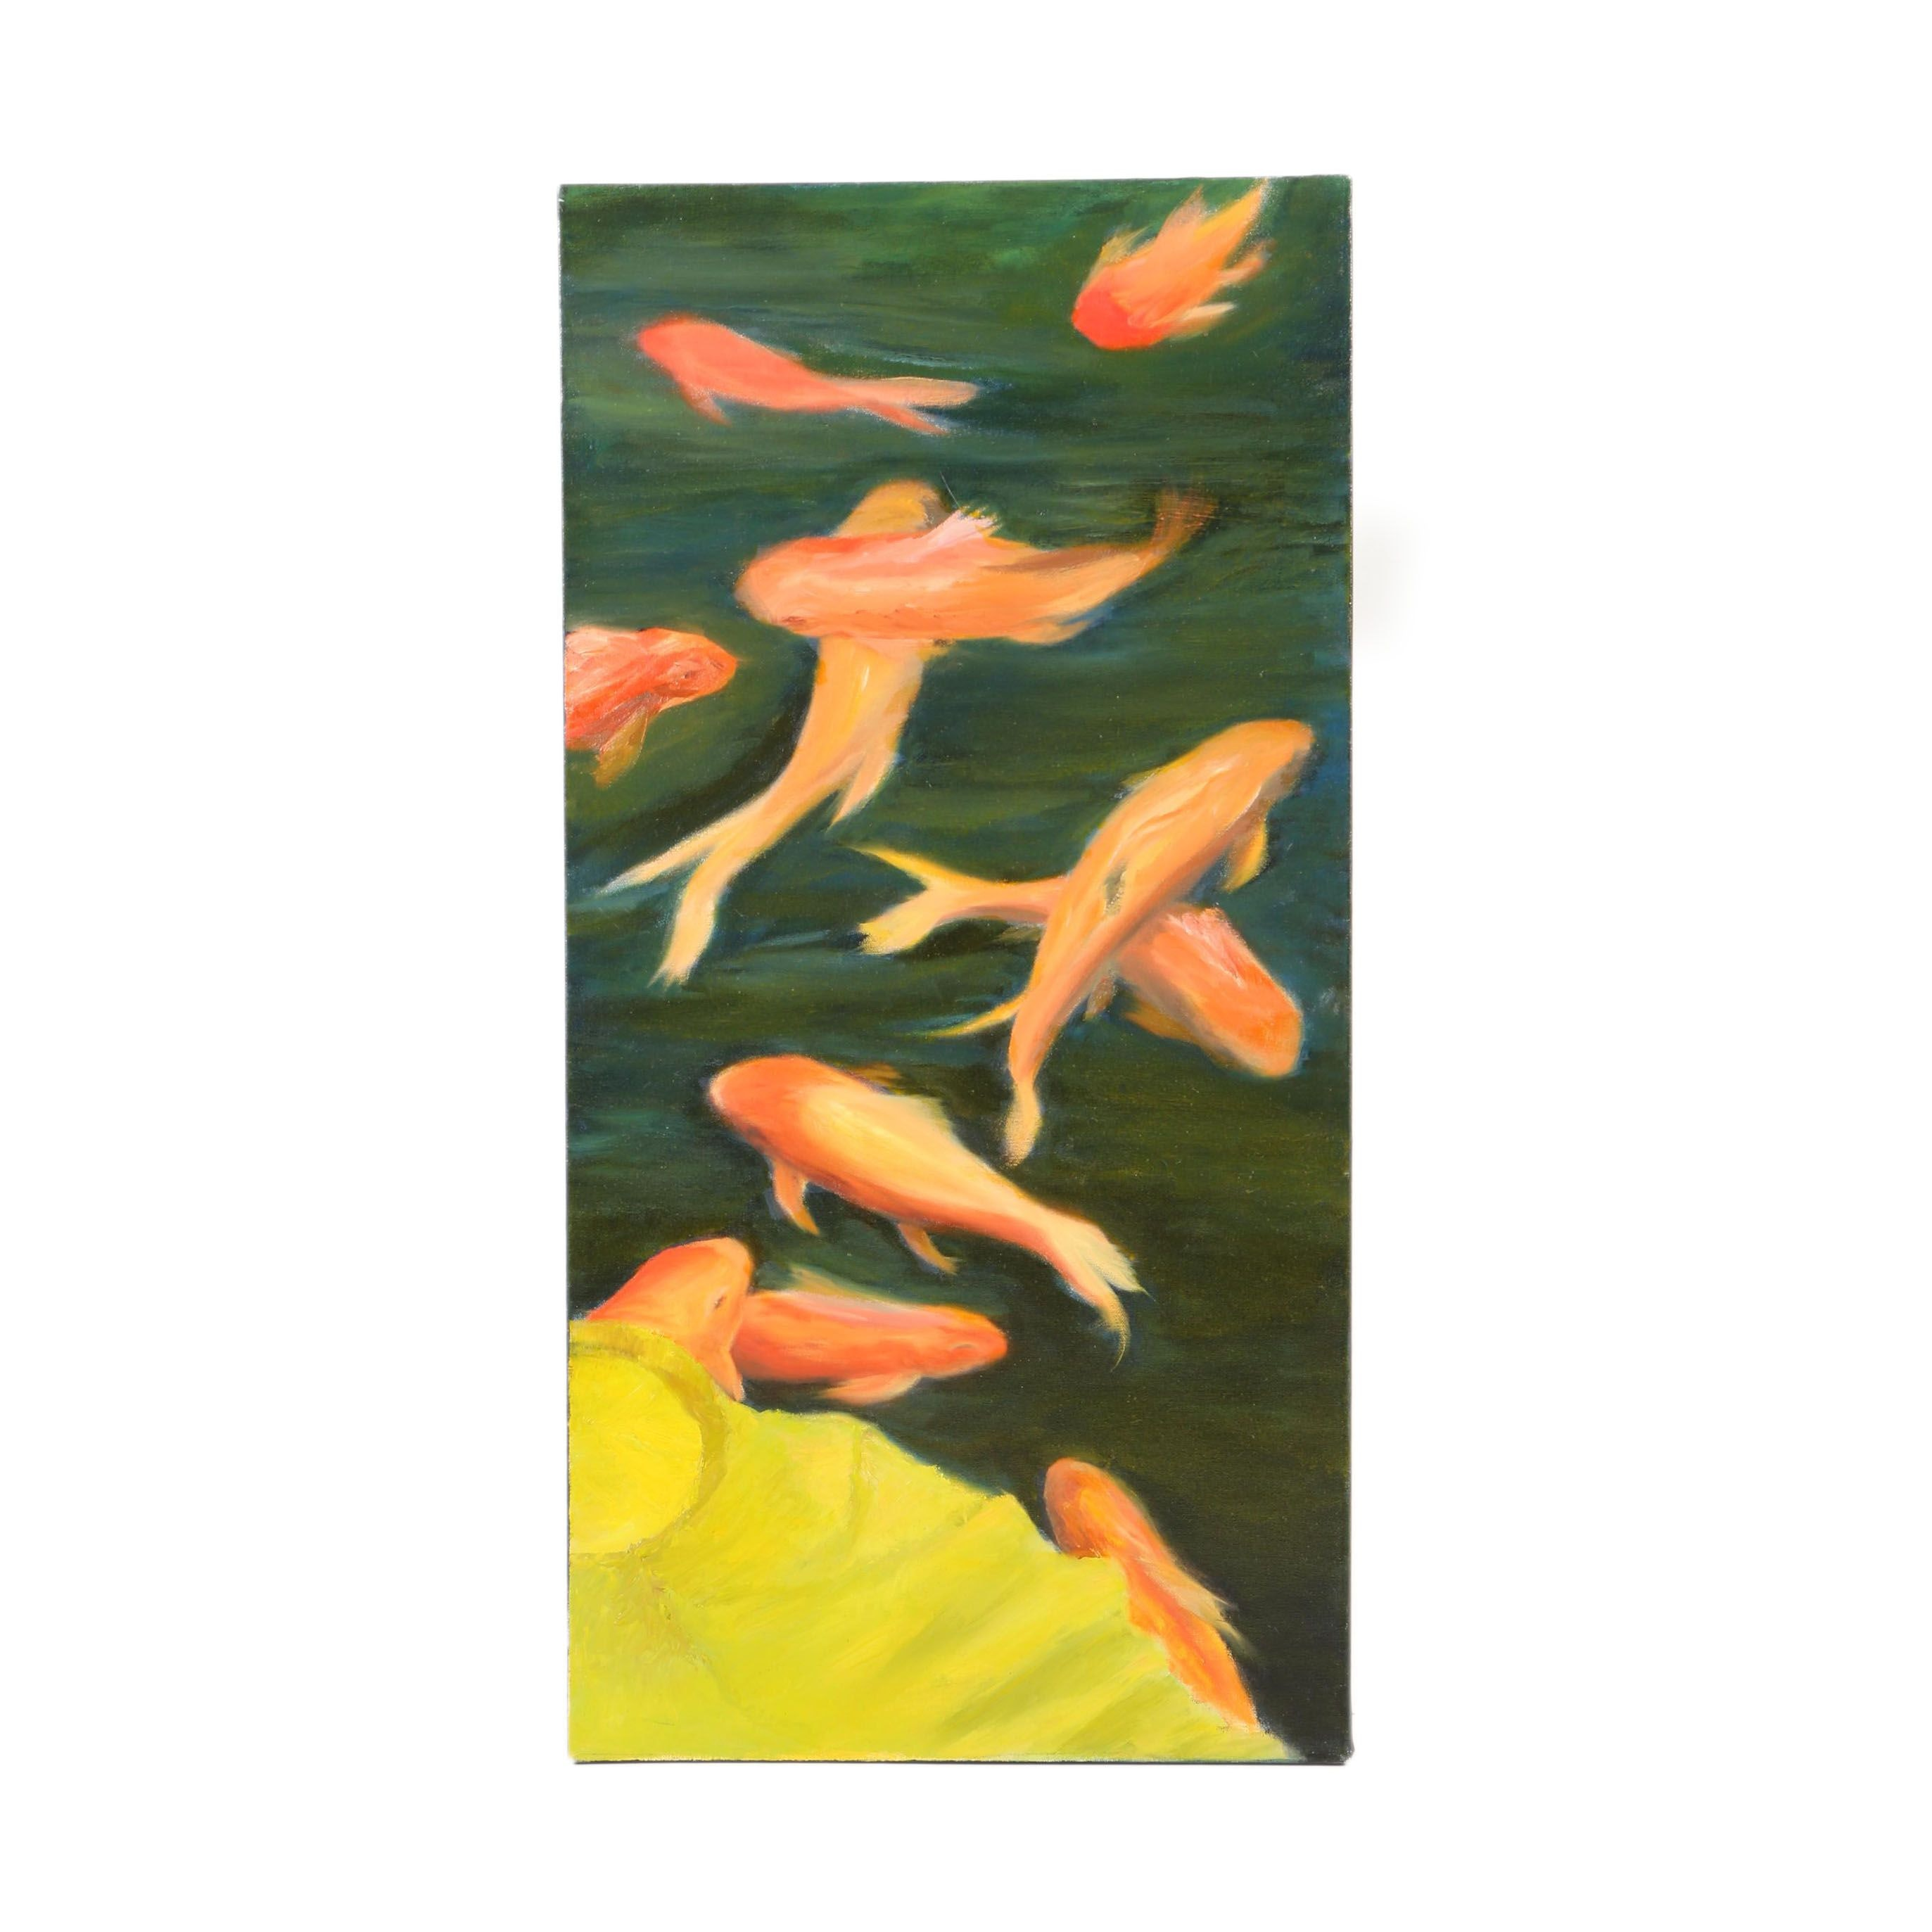 Acrylic Painting on Canvas of Gold Fish